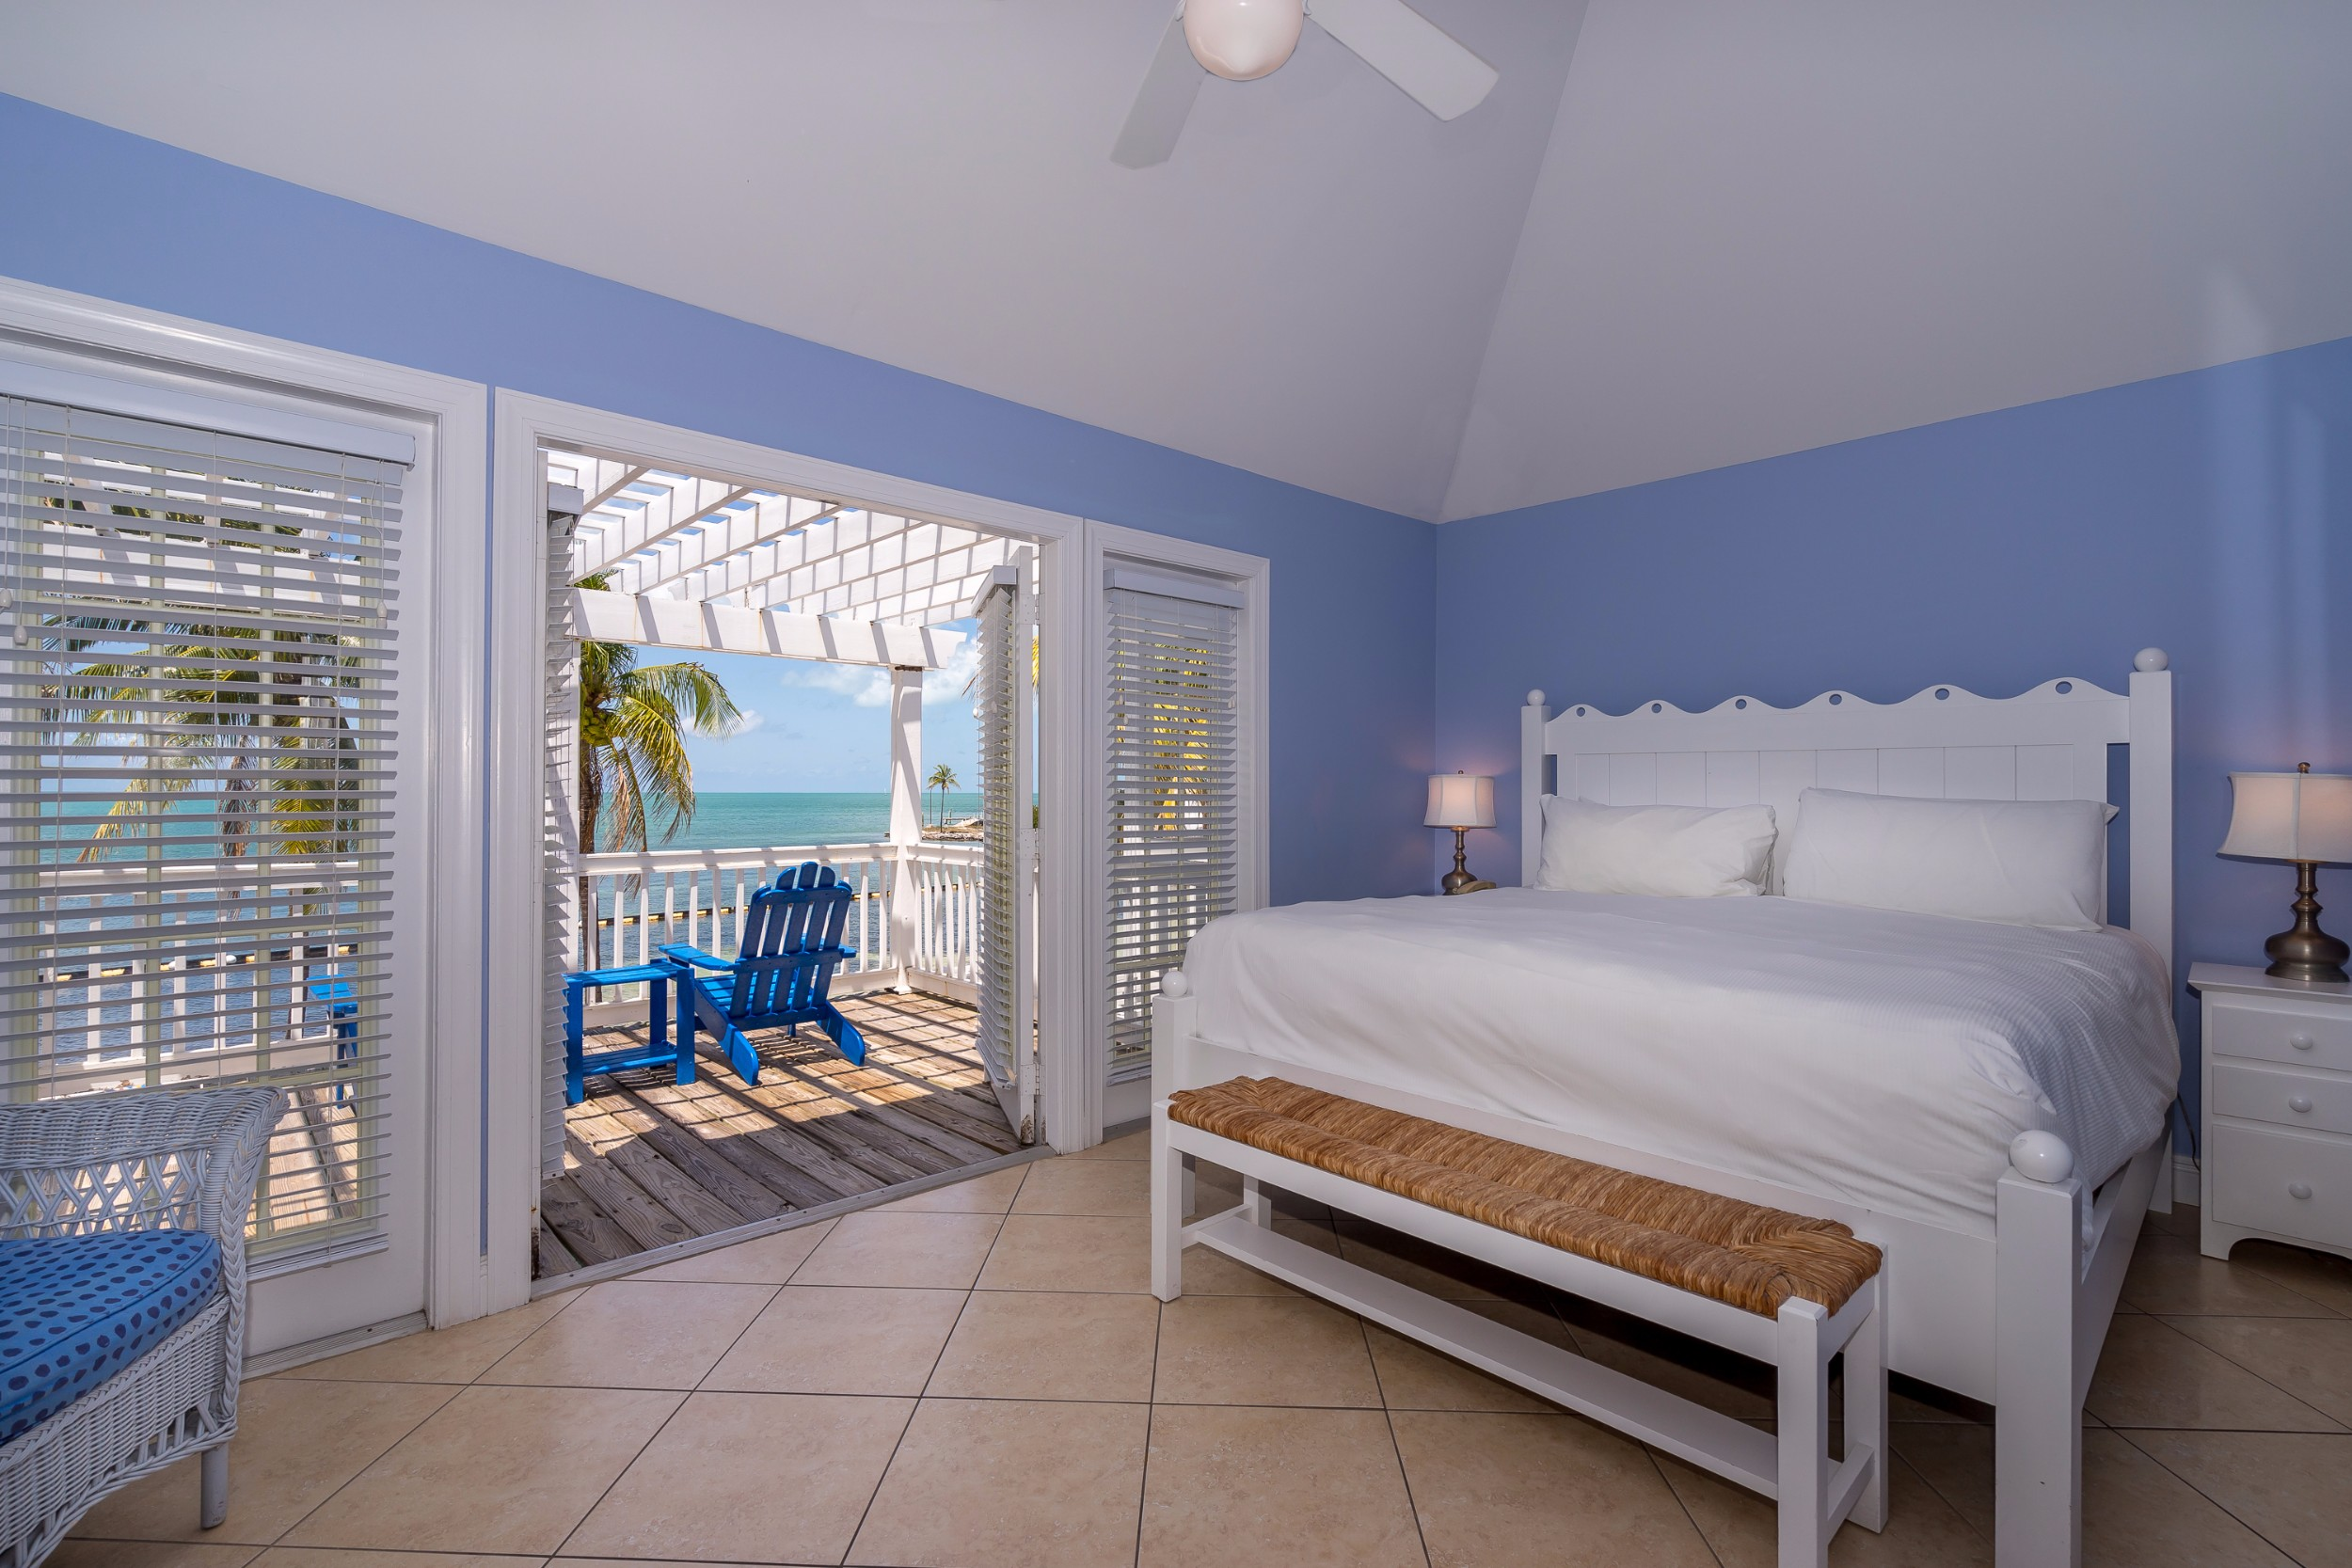 Beach front beach house bedroom in the Florida Keys